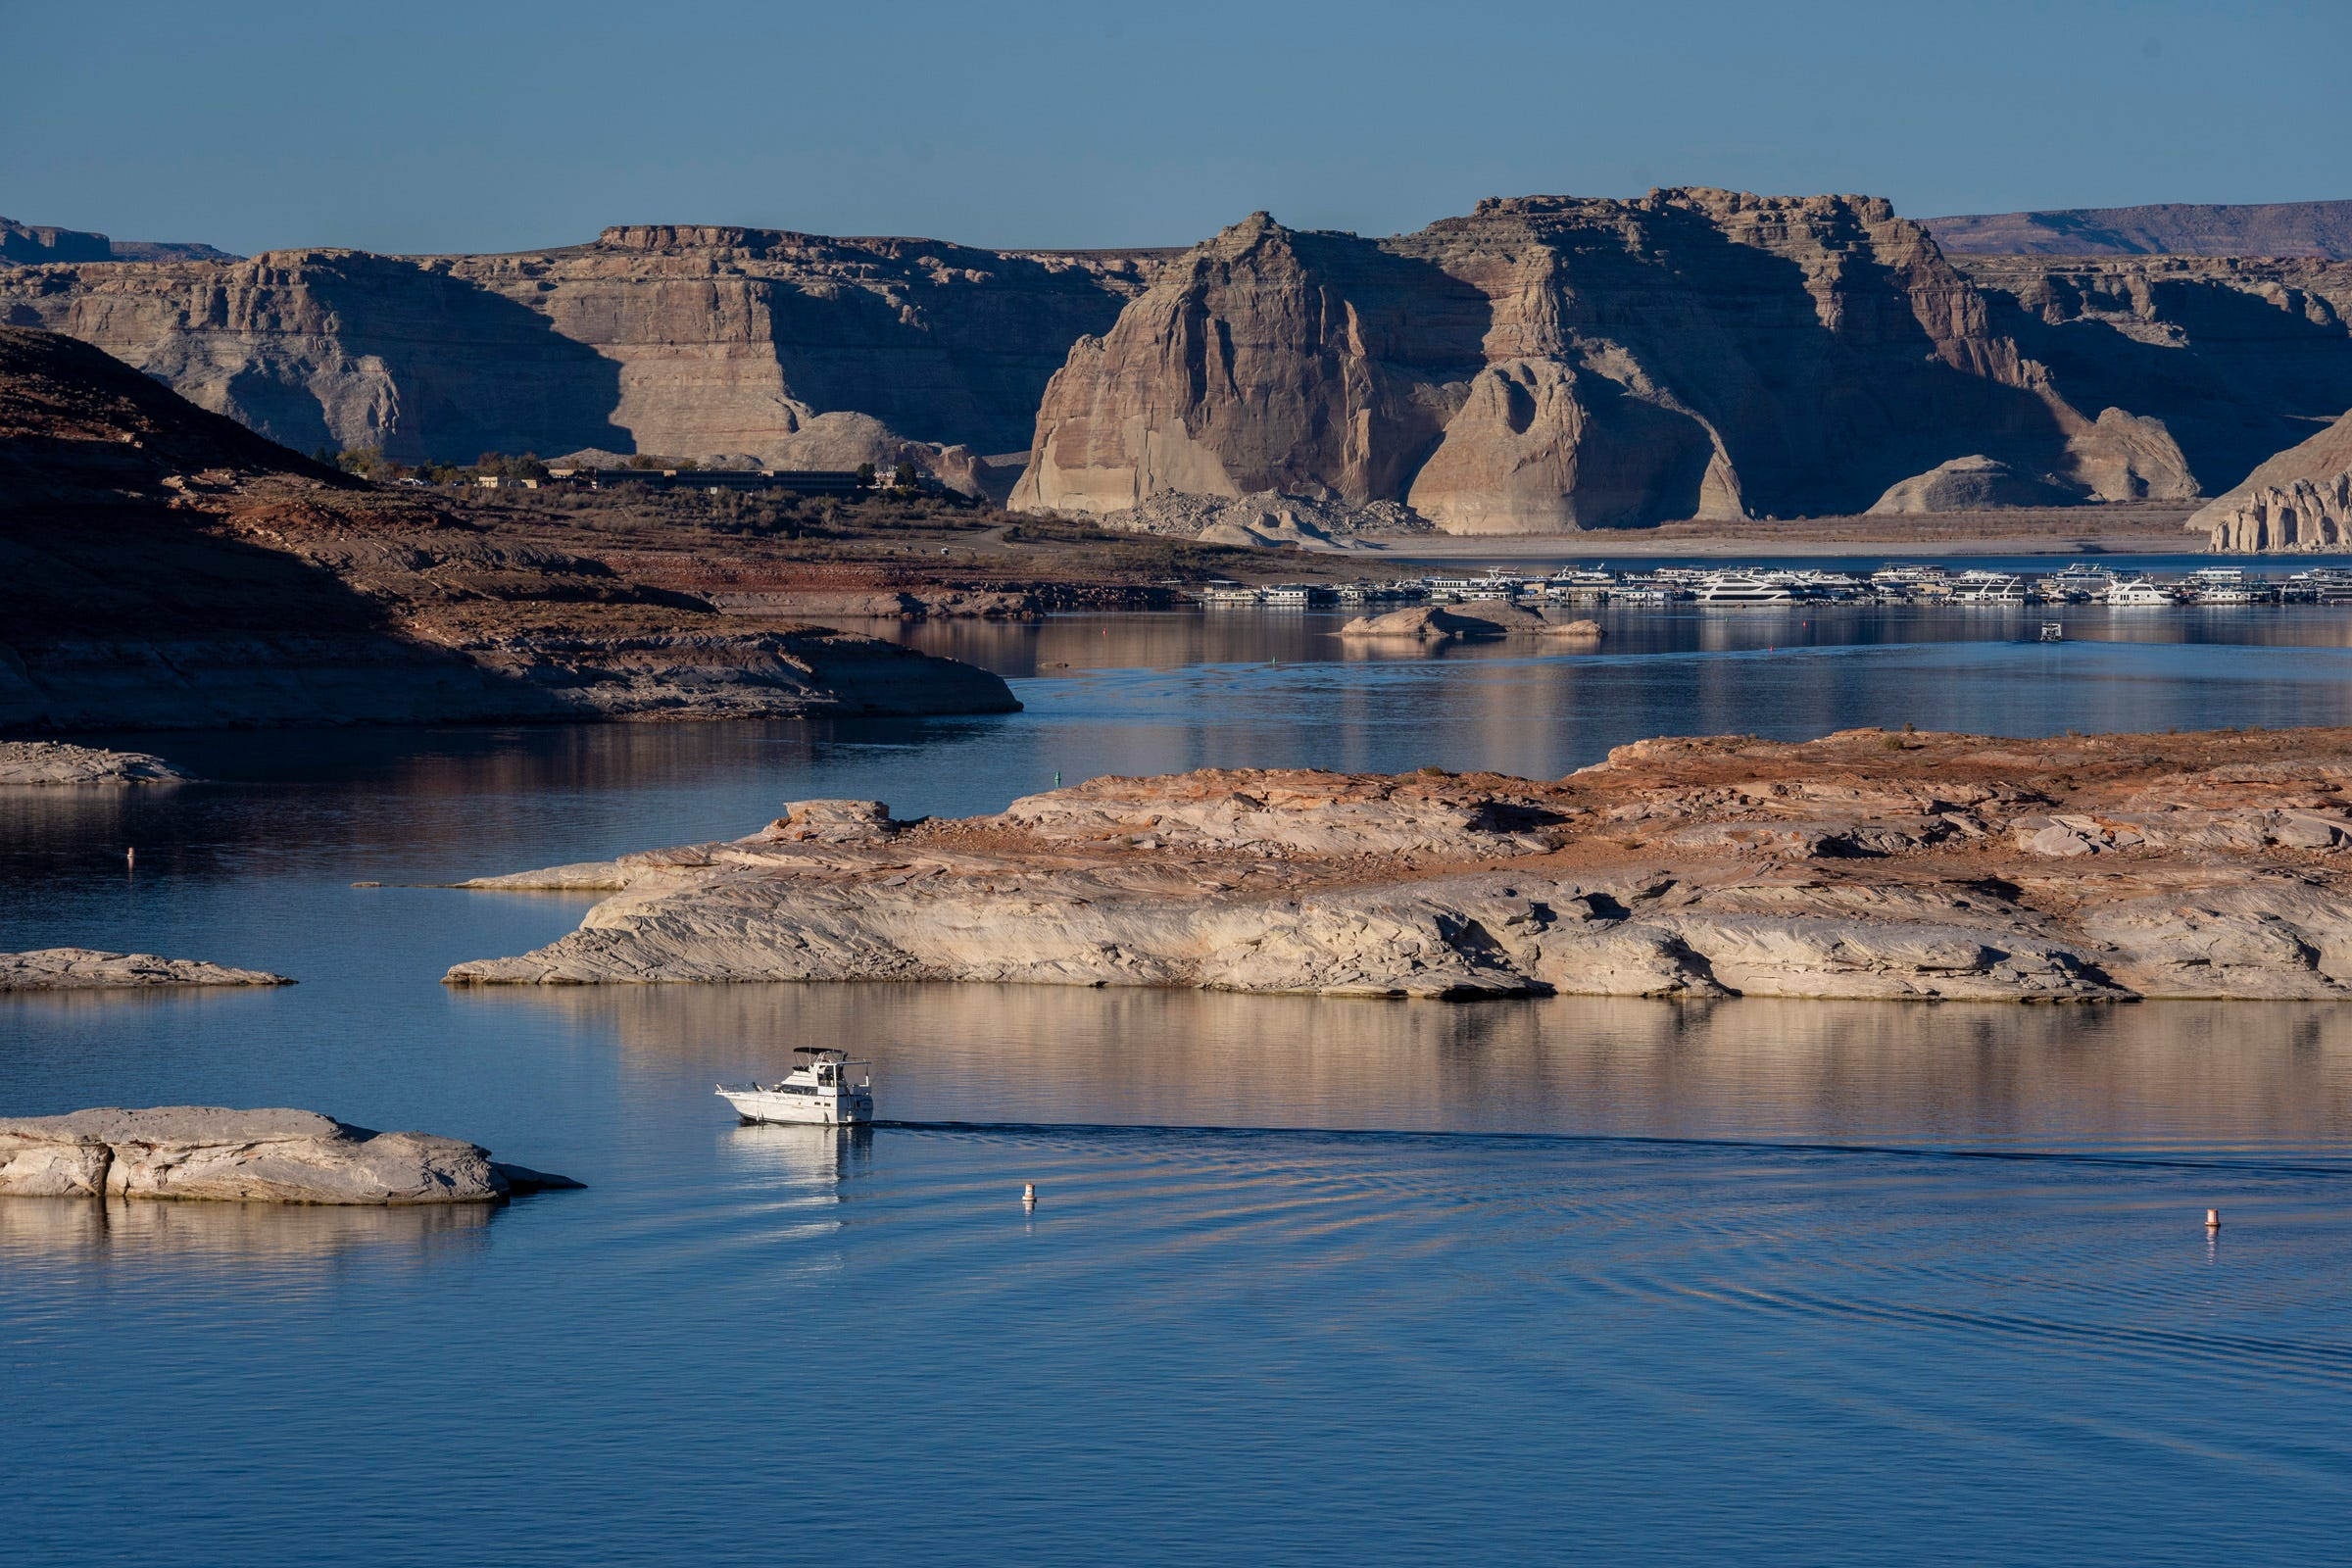 Lake Powell, which stretches across the Arizona-Utah border, stands at 44% of full capacity in November 2020. The reservoir has declined as the flow of the Colorado River has decreased.